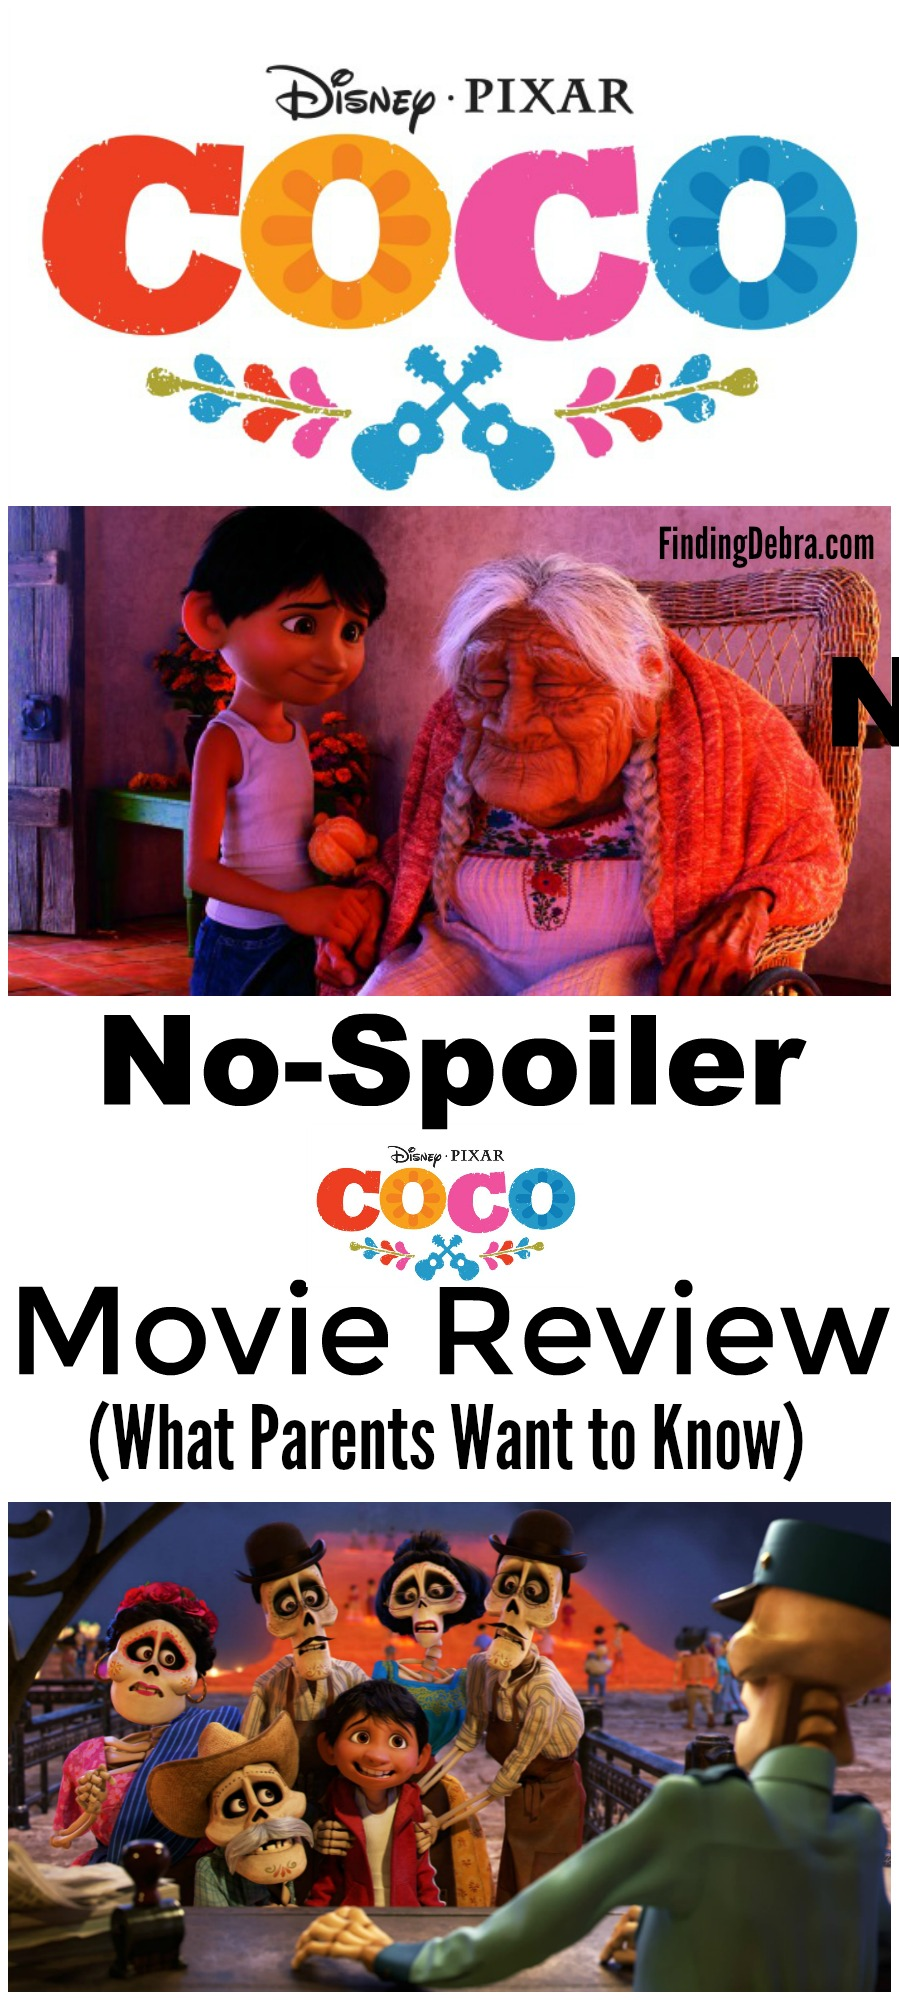 Disney*Pixar Coco Movie Review -  no spoilers, but answers what parents want to know. #DisneyPartner #PixarCoco #PixarCocoEvent #Disney #Pixar